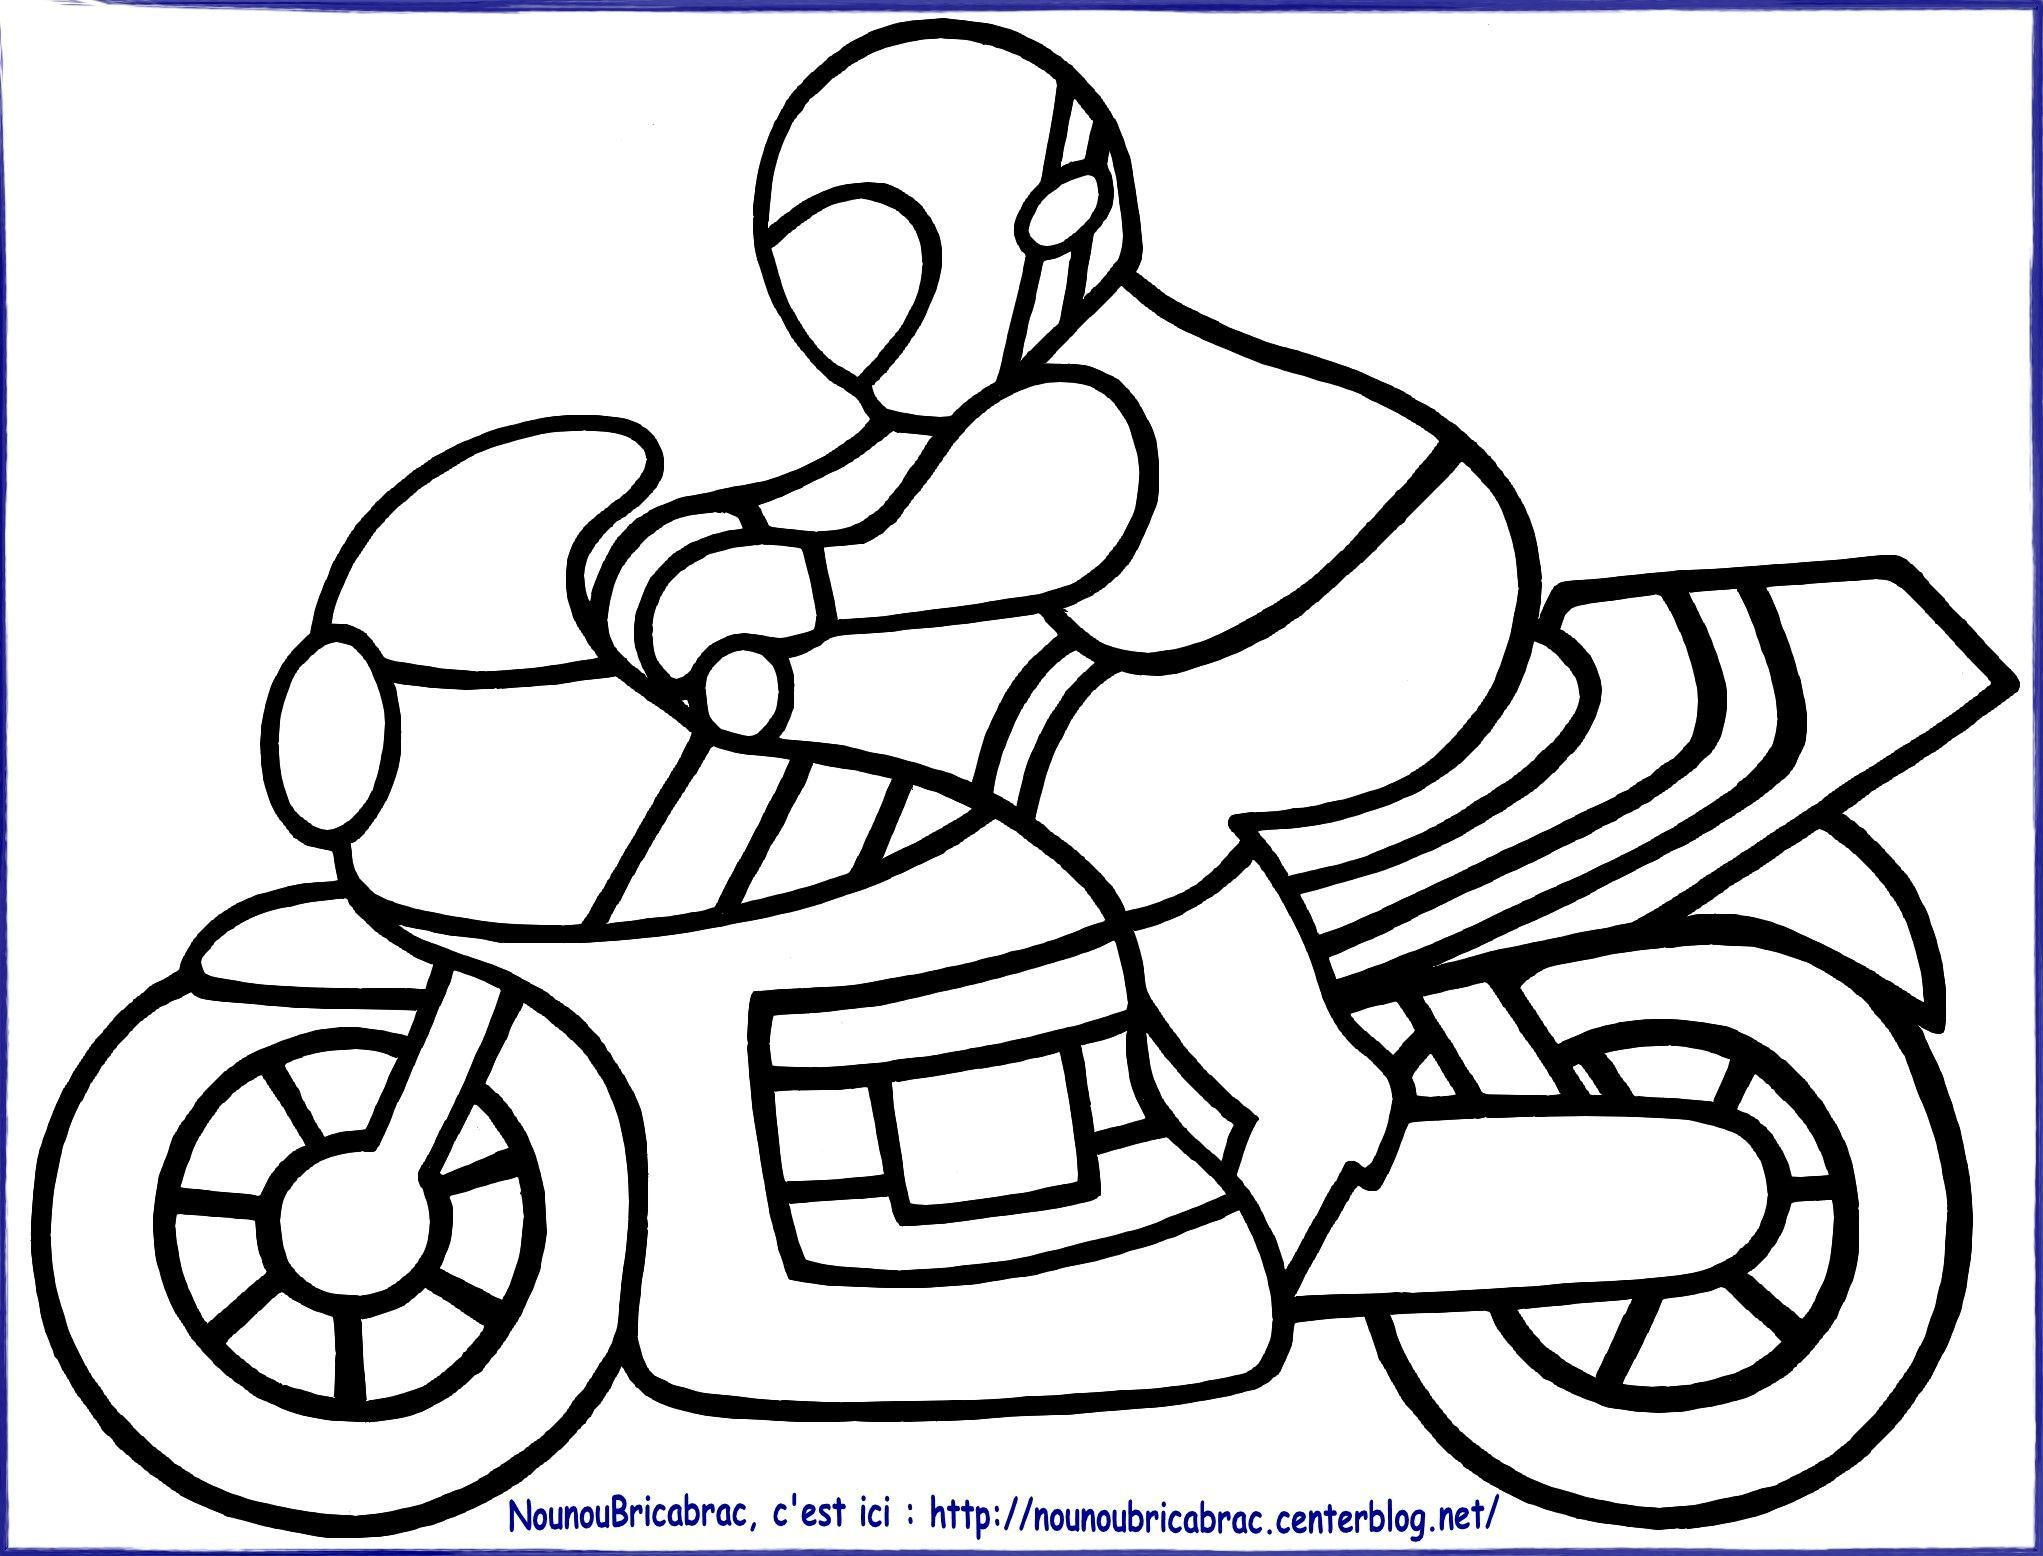 Coloriages transports - Modele coloriage enfant ...